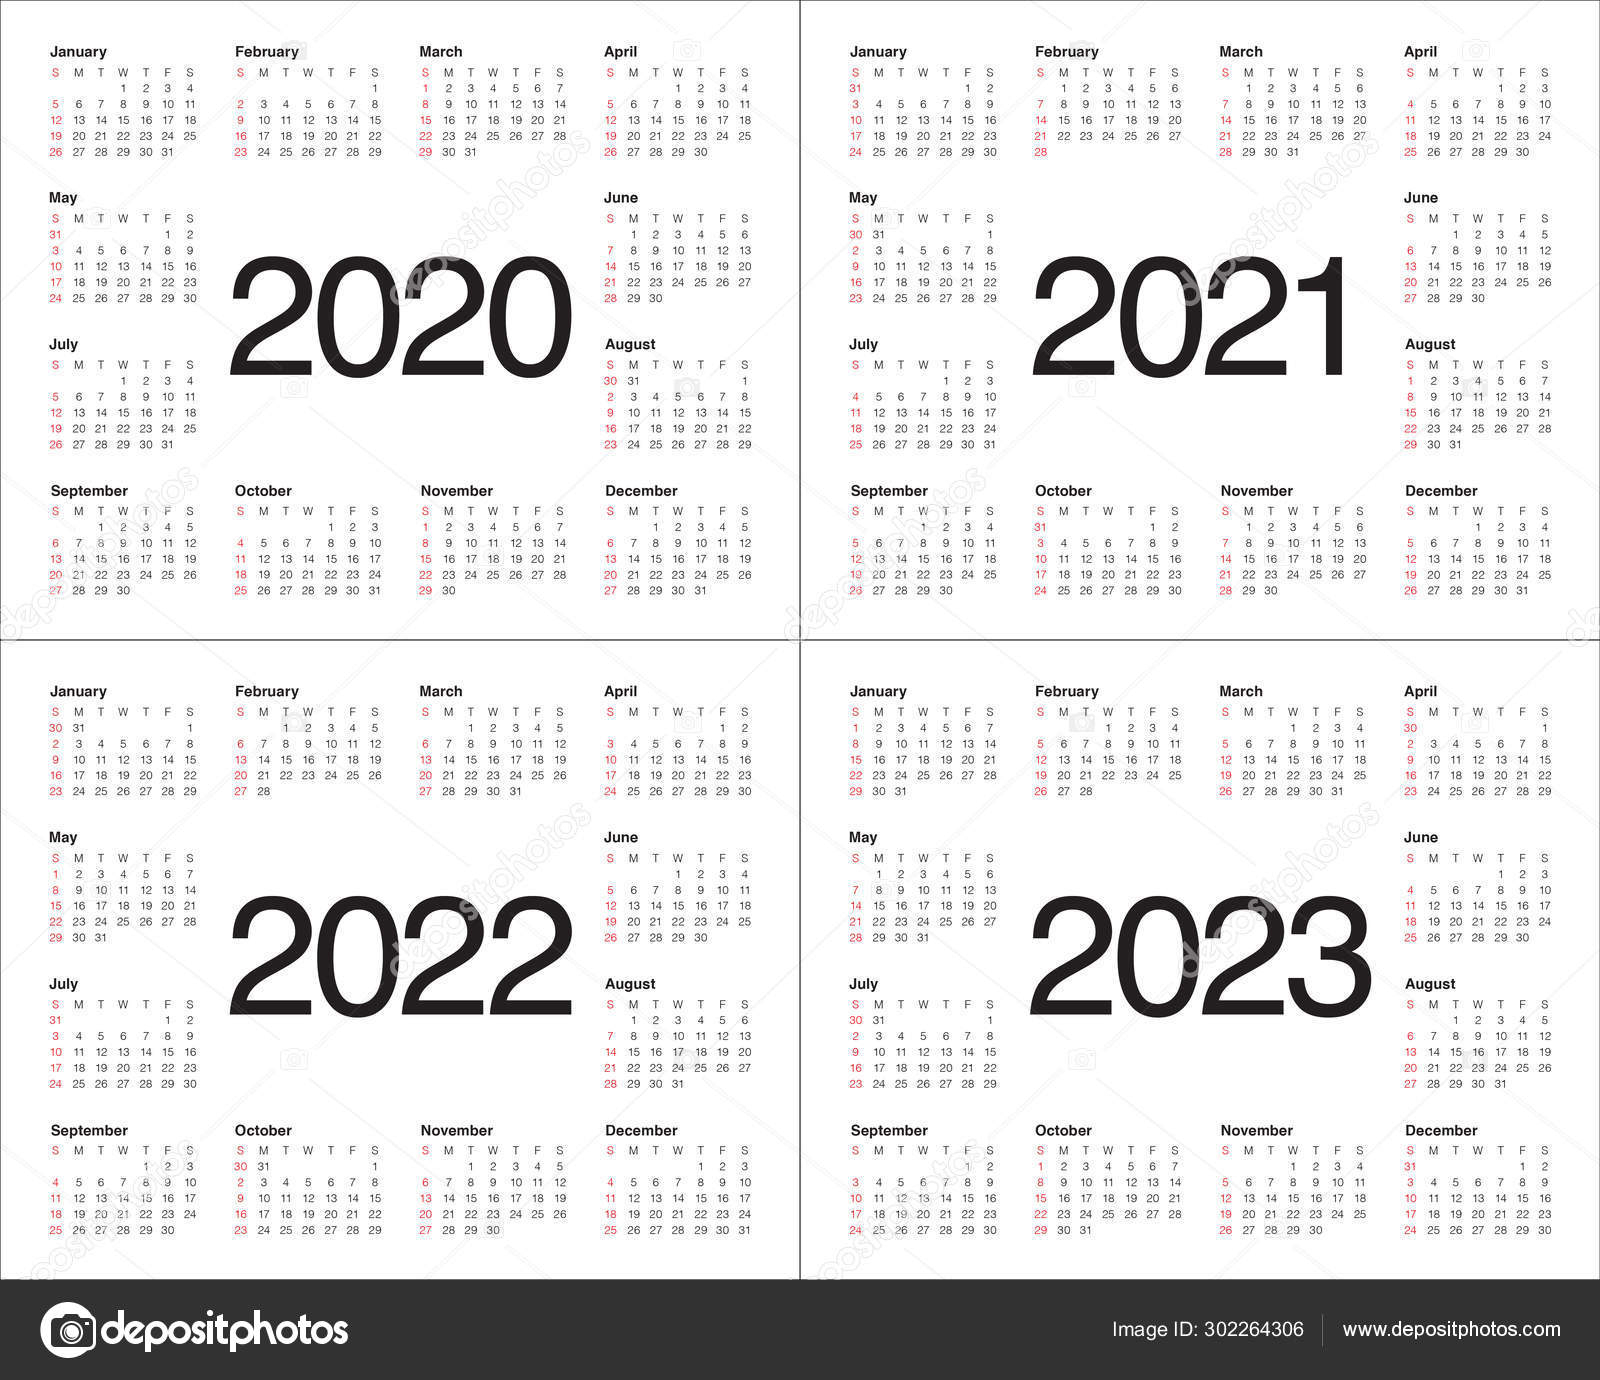 Tips Bermain Slot Online Lengkap in Three Year Printable Calendar 2020 To 2023